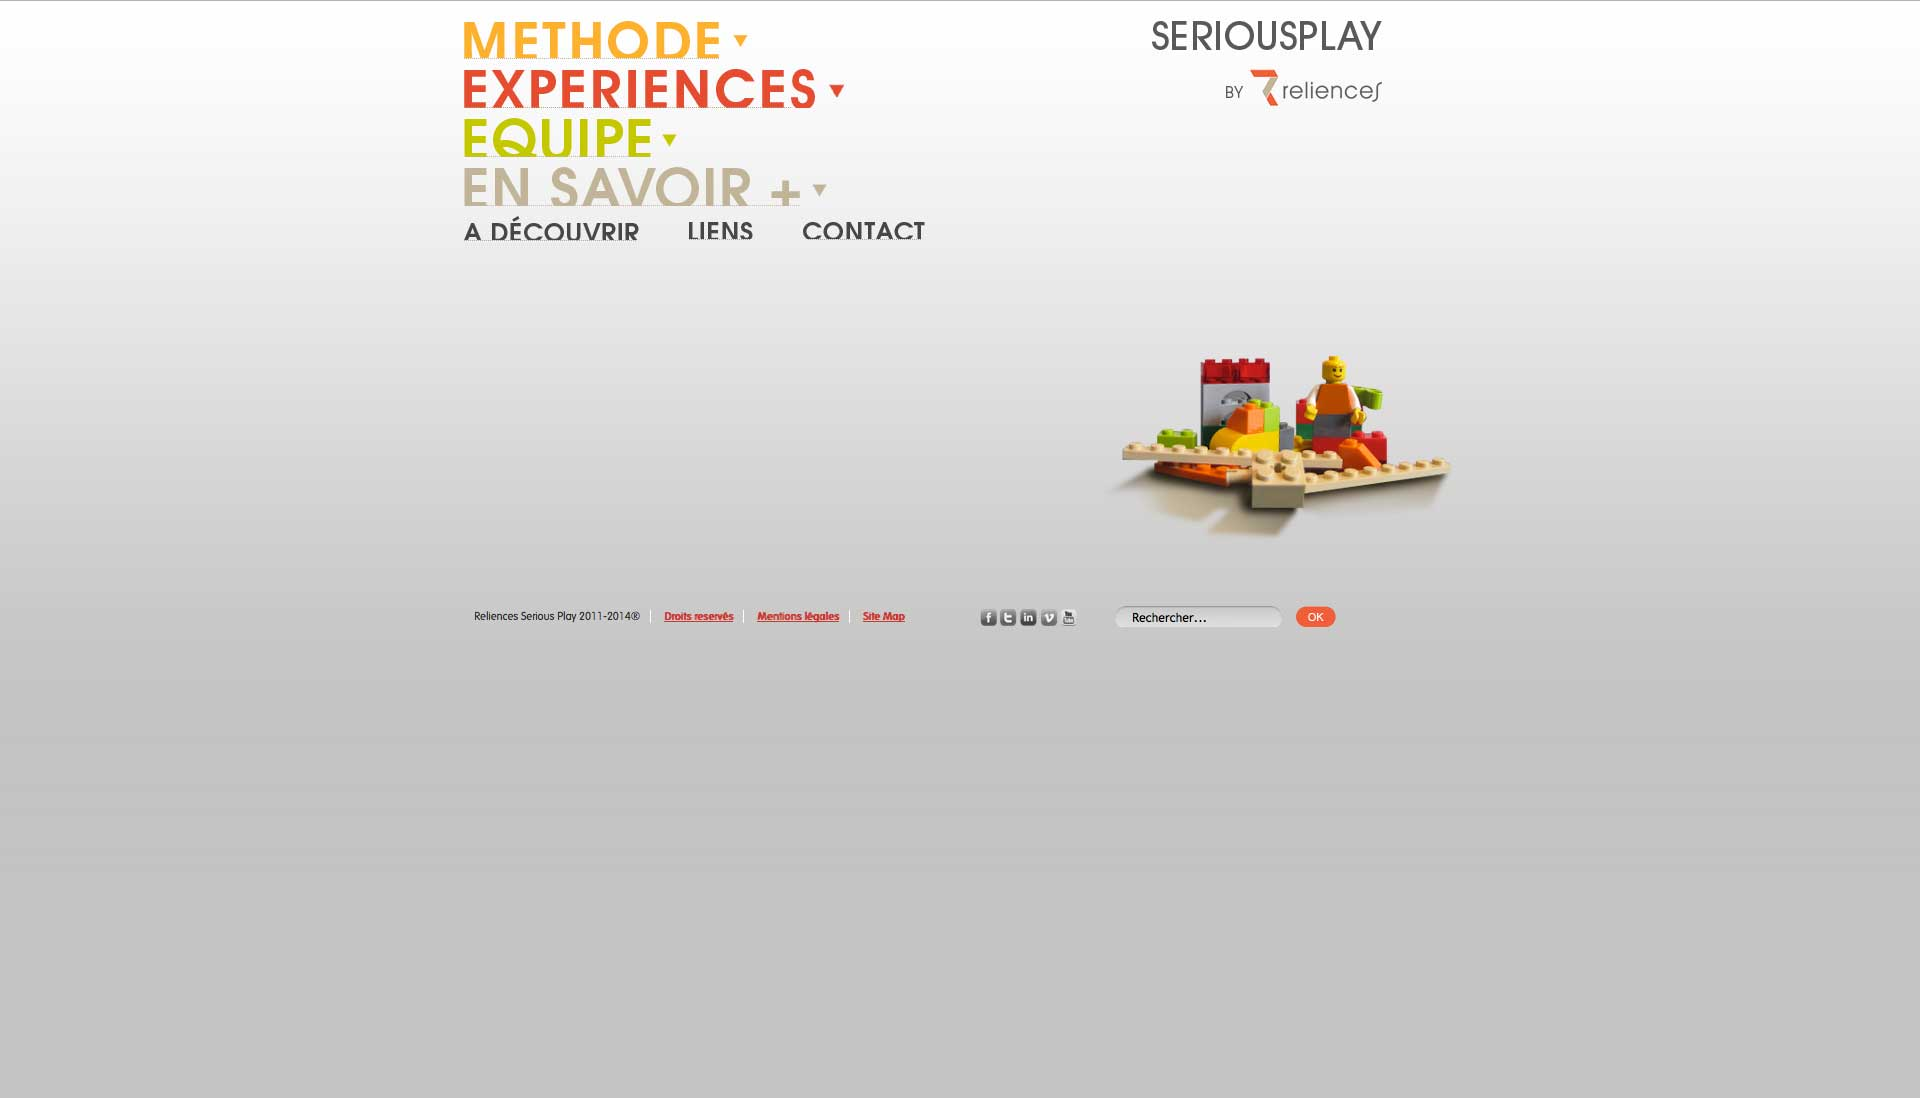 Relience Seriousplay